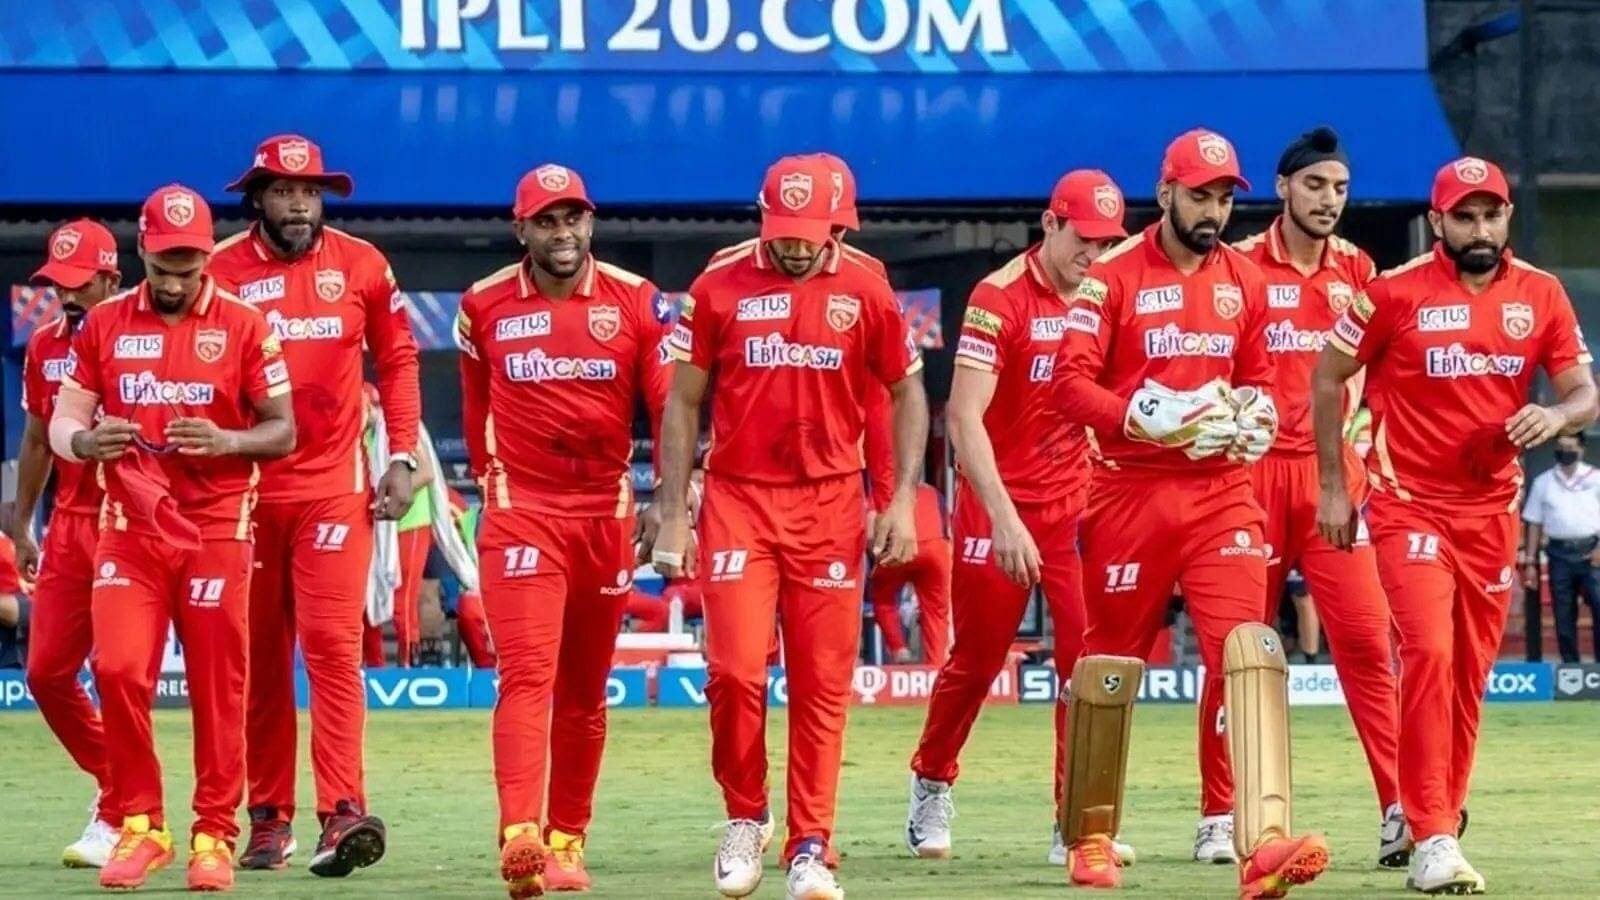 Which IPL Team Has Most Fans